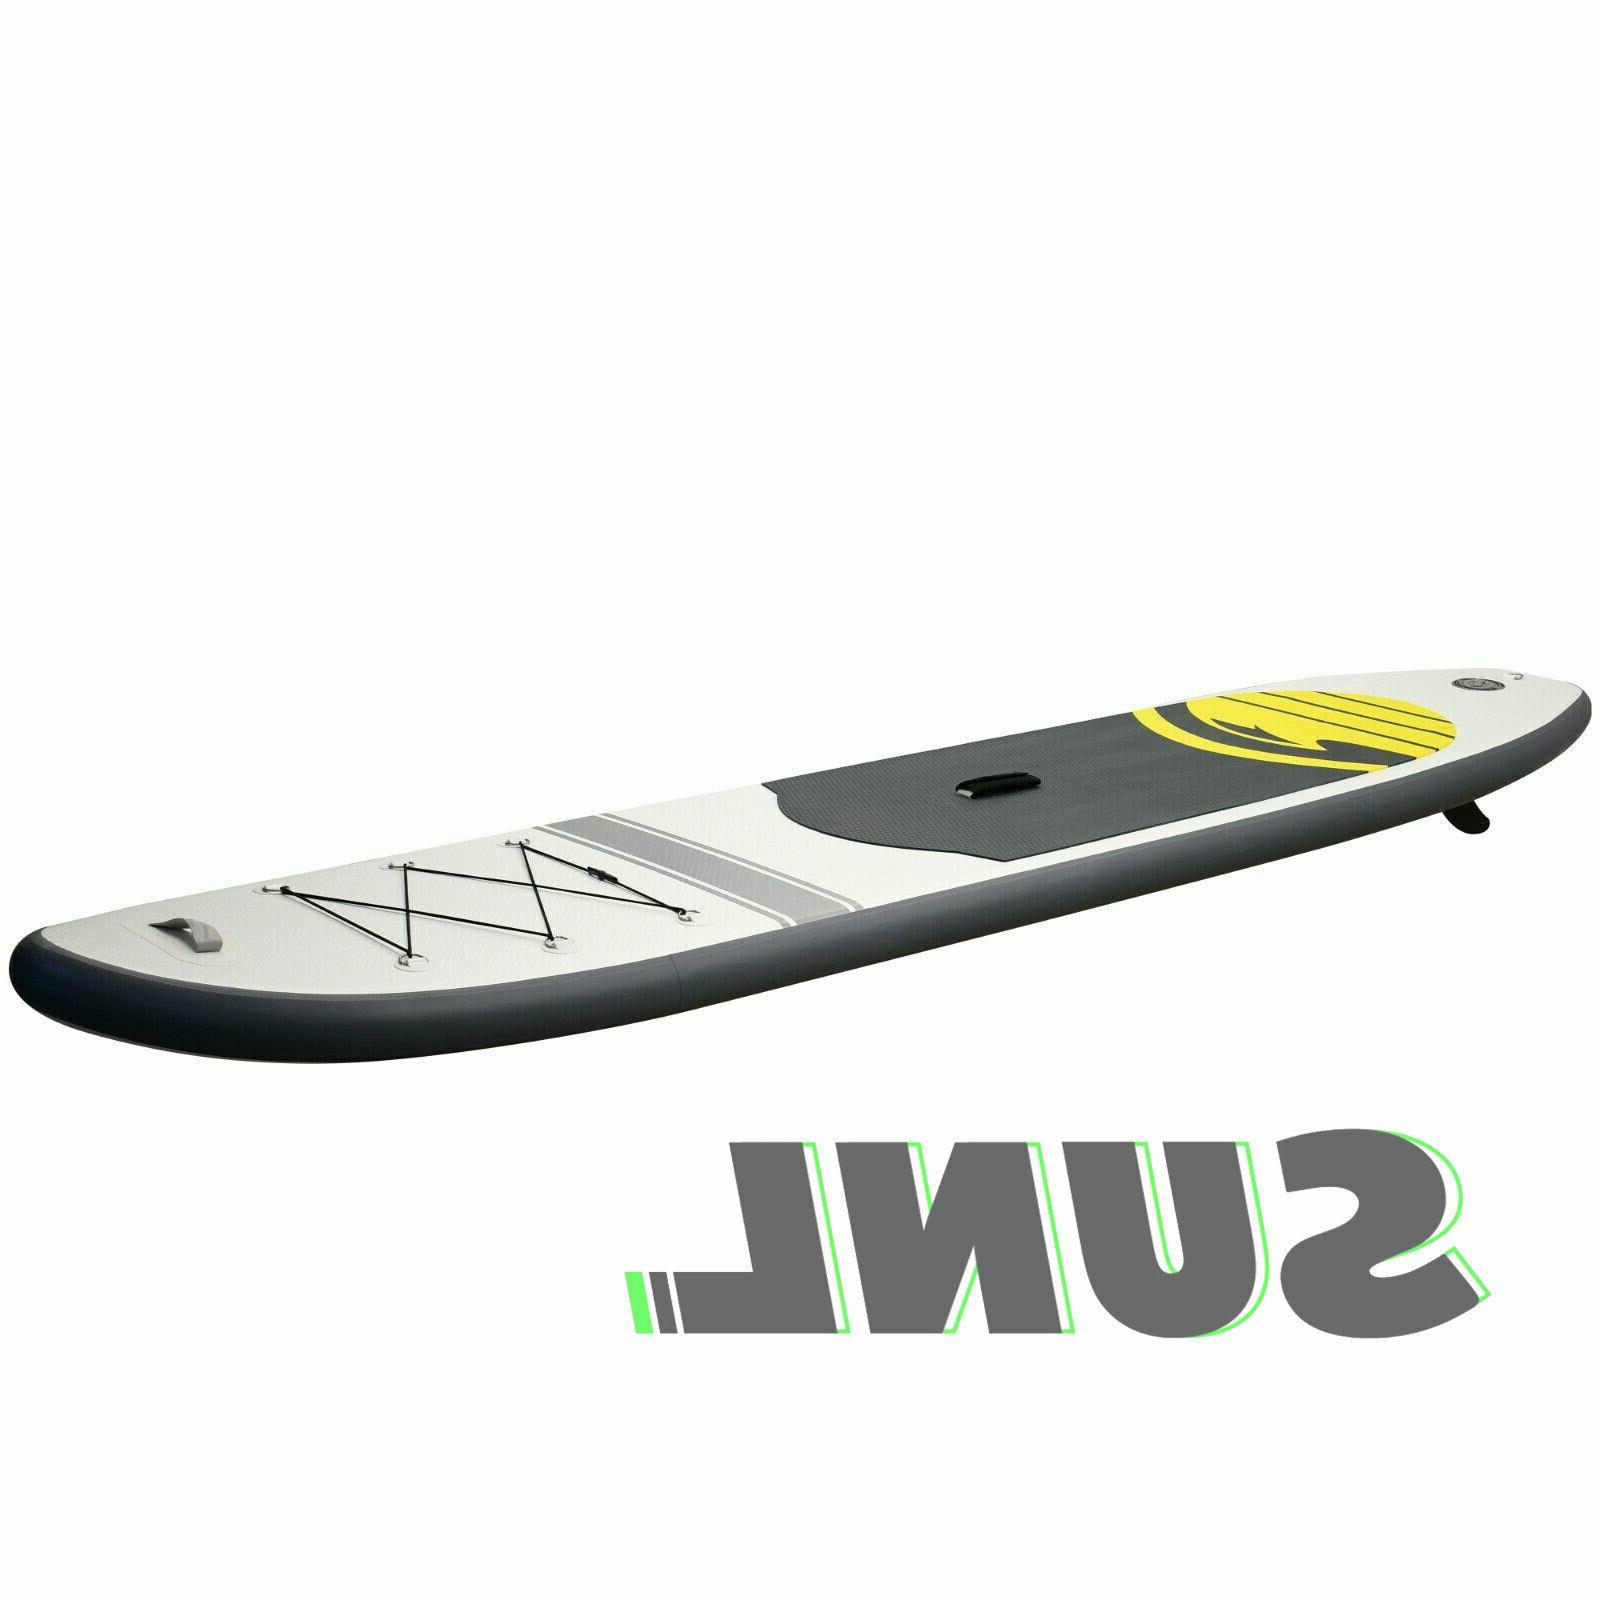 SunL Inflatable Stand-Up Board - the 10'   11'